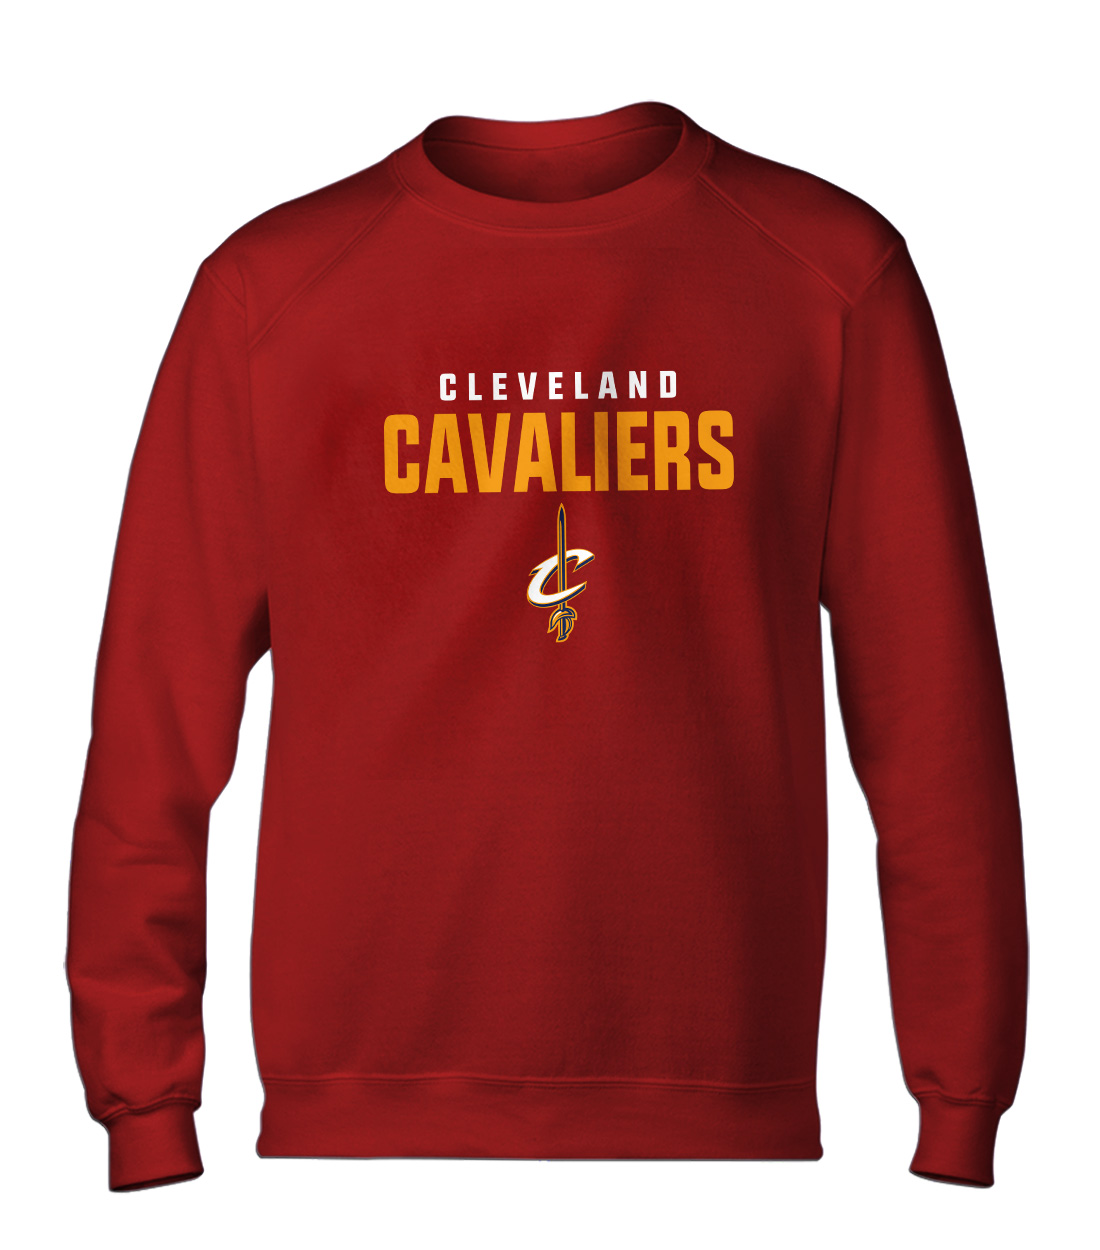 Cleveland Cavaliers Basic (BSC-RED-NP-62-NBA-CLE-CAVS.FLAT)